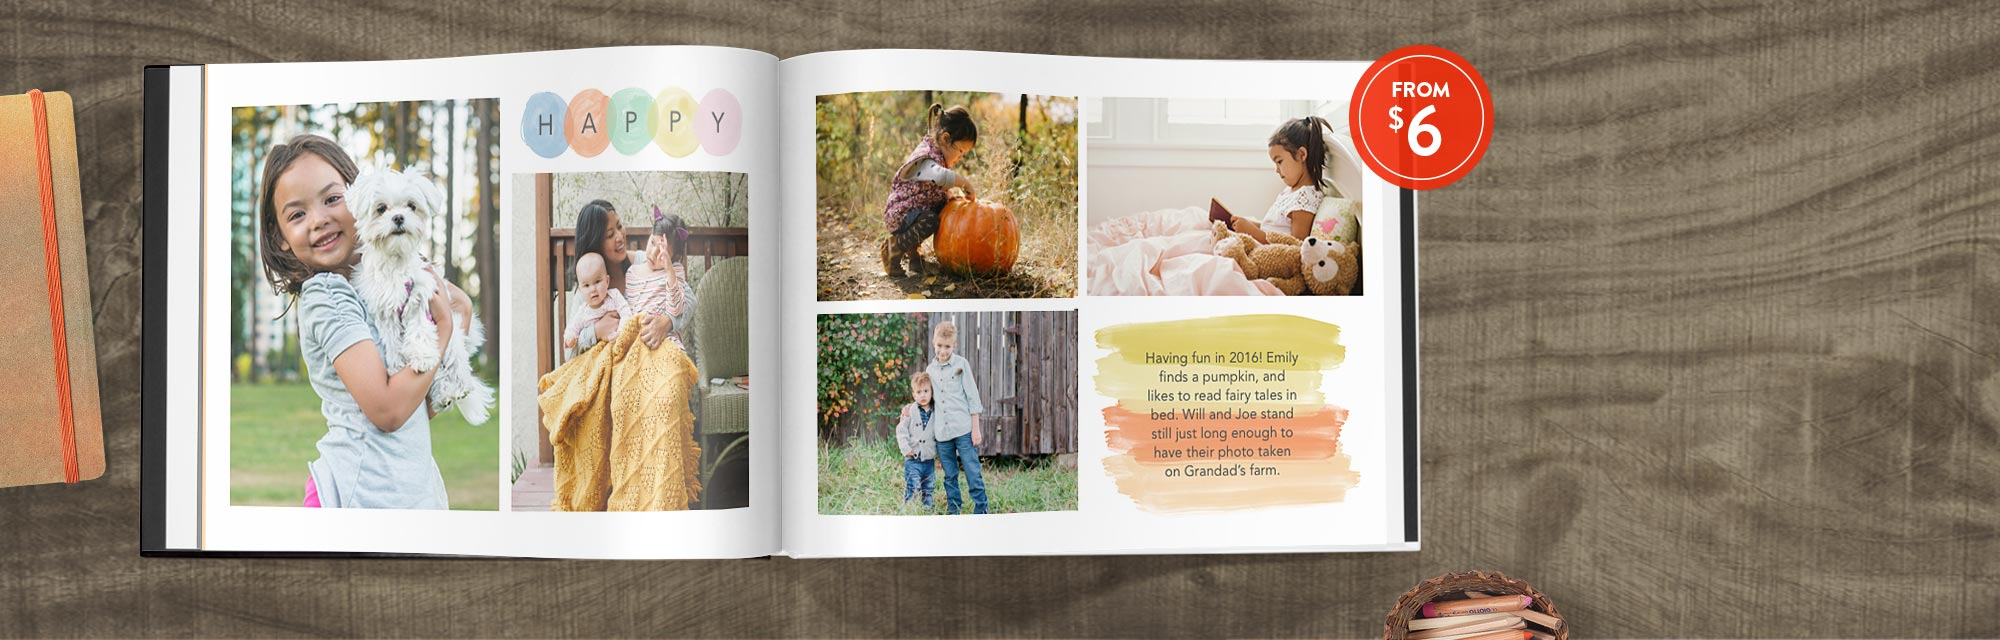 Your best memories : 50% off photo books + extra pageswith TREATMEOffer ends 31/10View Terms & Conditions